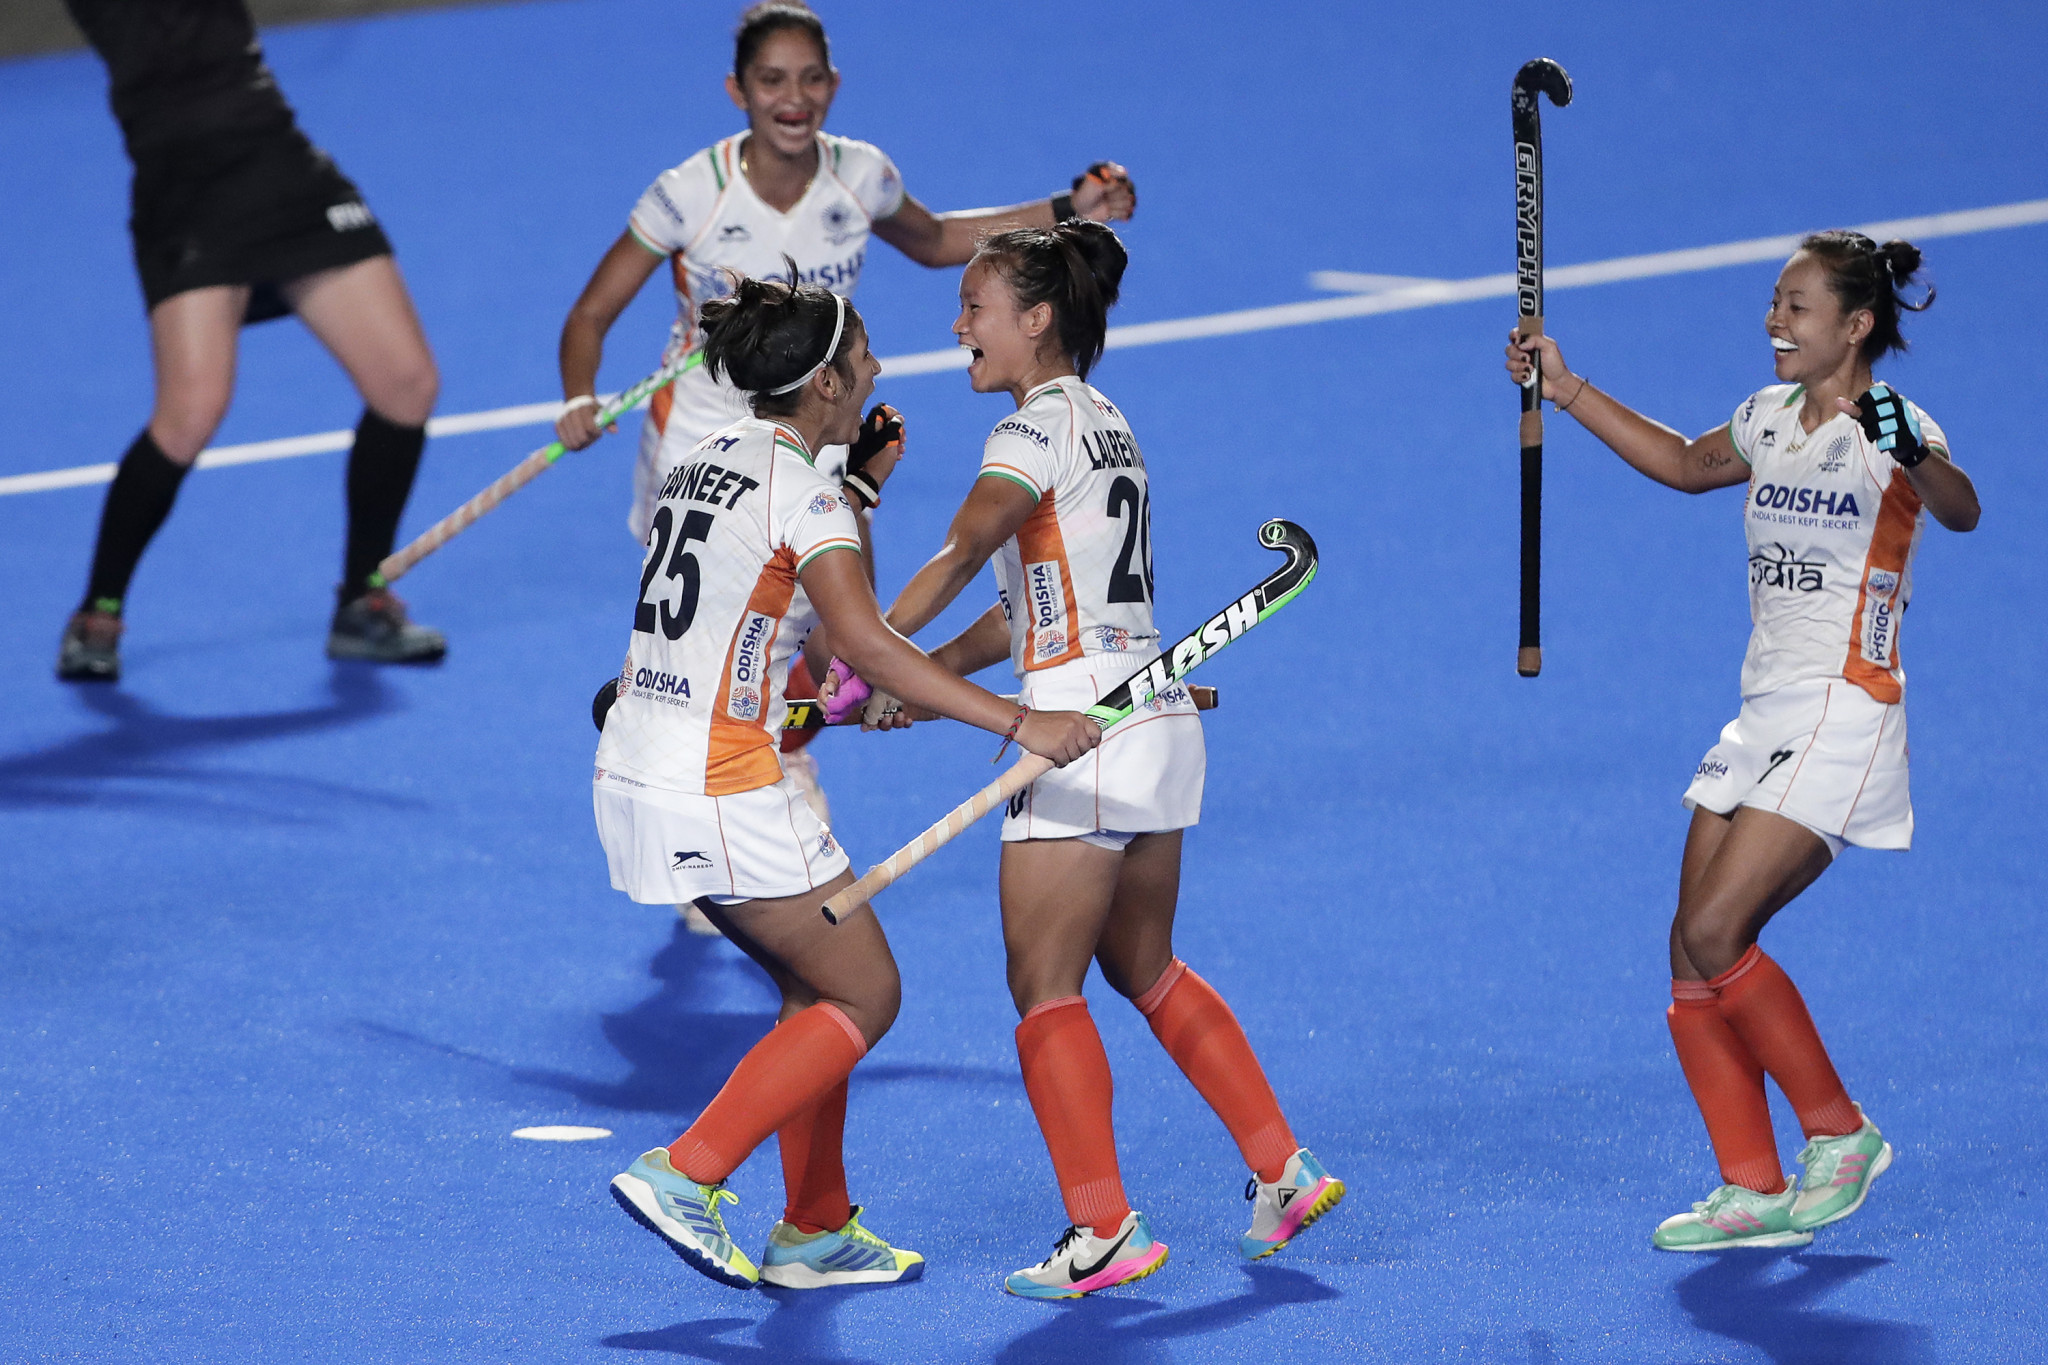 India has more than 100 athletes already qualified for Tokyo 2020, including the women's hockey team ©Getty Images